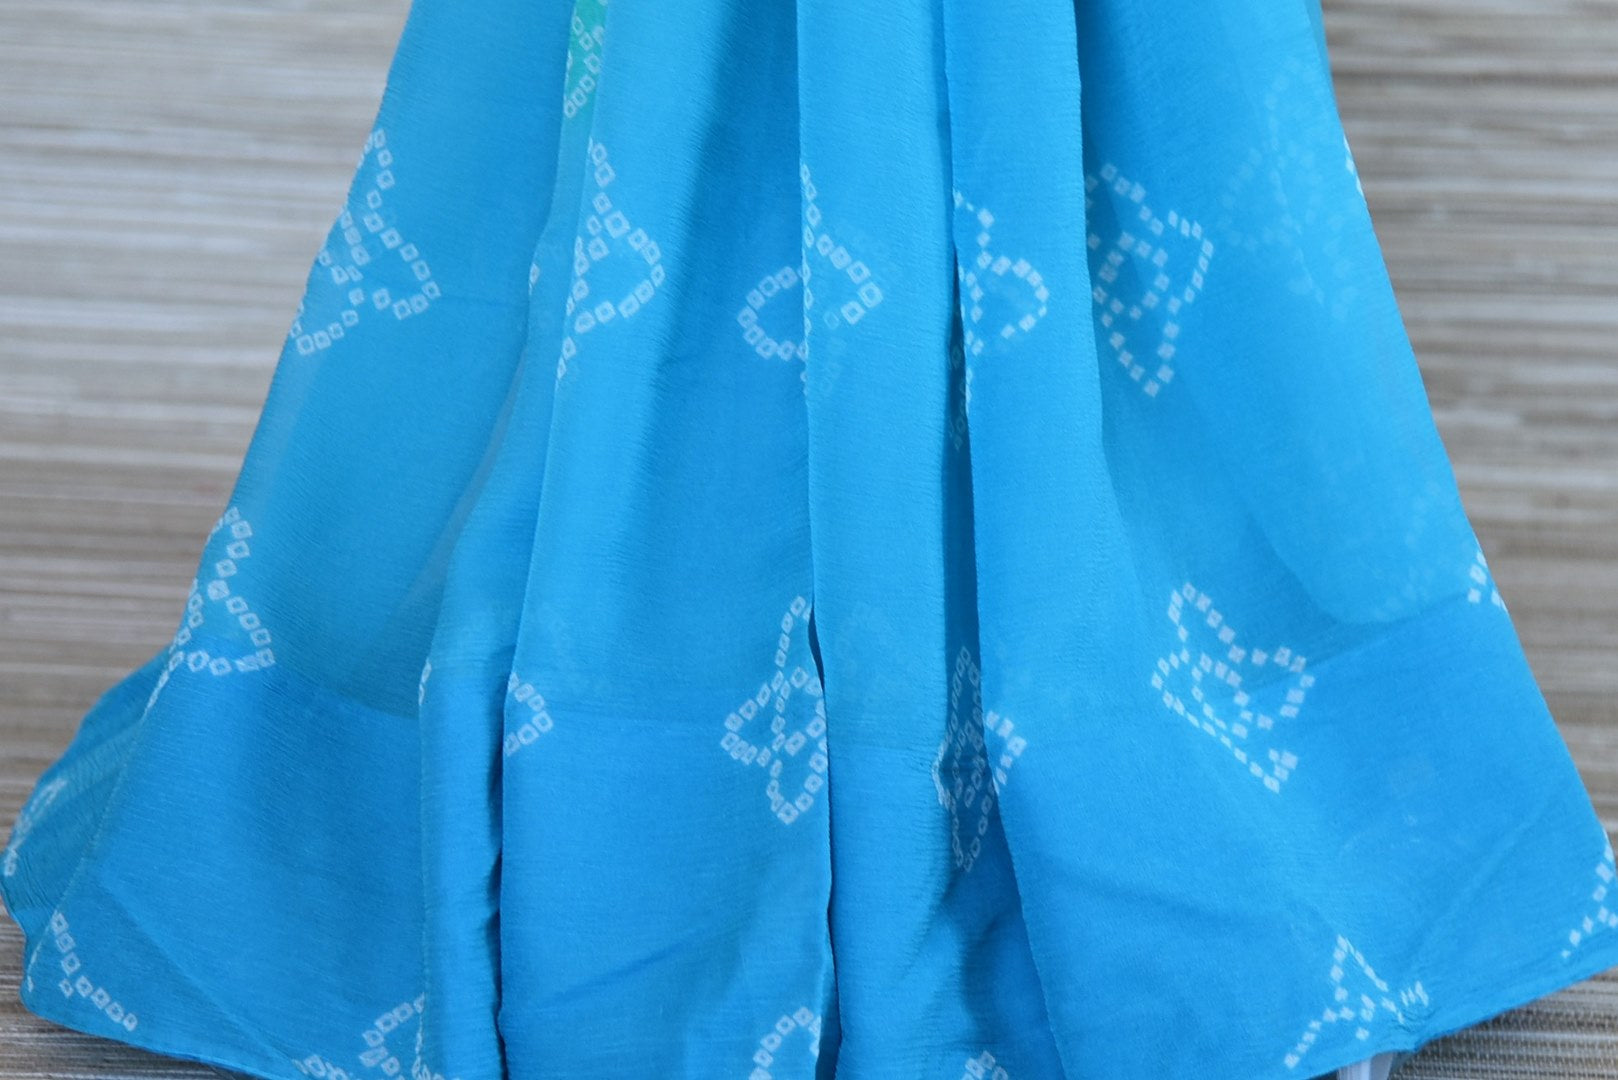 Shop elegant sky blue Bandhej chiffon saree online in USA with embroidered green saree blouse. Be an epitome of elegance and tradition in exquisite designer saris, handwoven saris from Pure Elegance clothing store in USA. -pleats